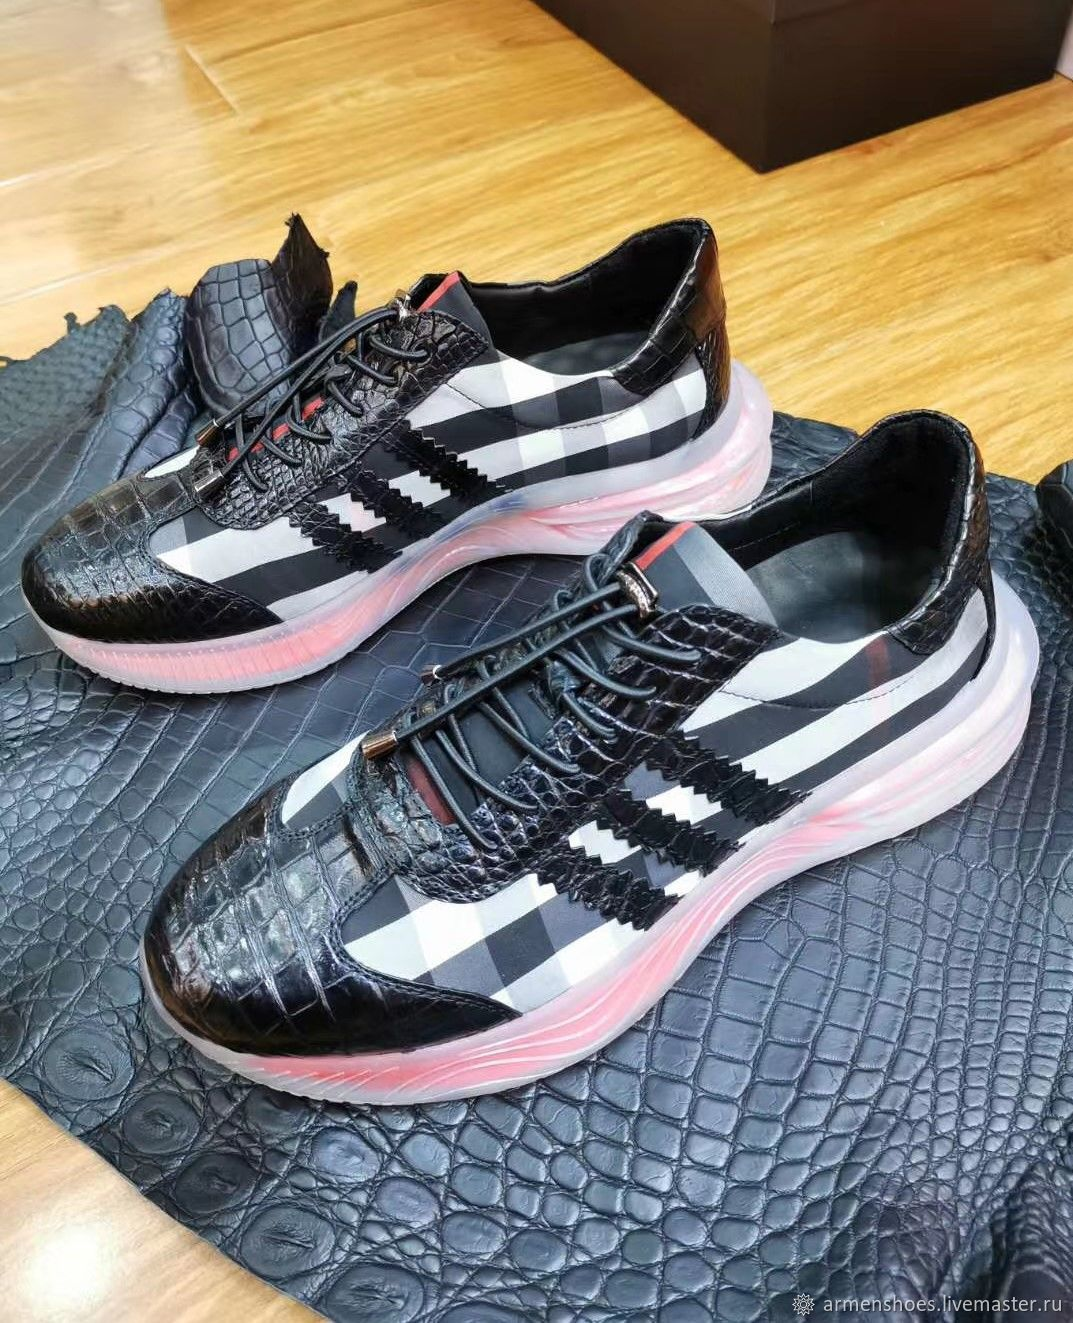 Sneakers made of genuine crocodile leather and material, custom made!, Sneakers, Tosno,  Фото №1